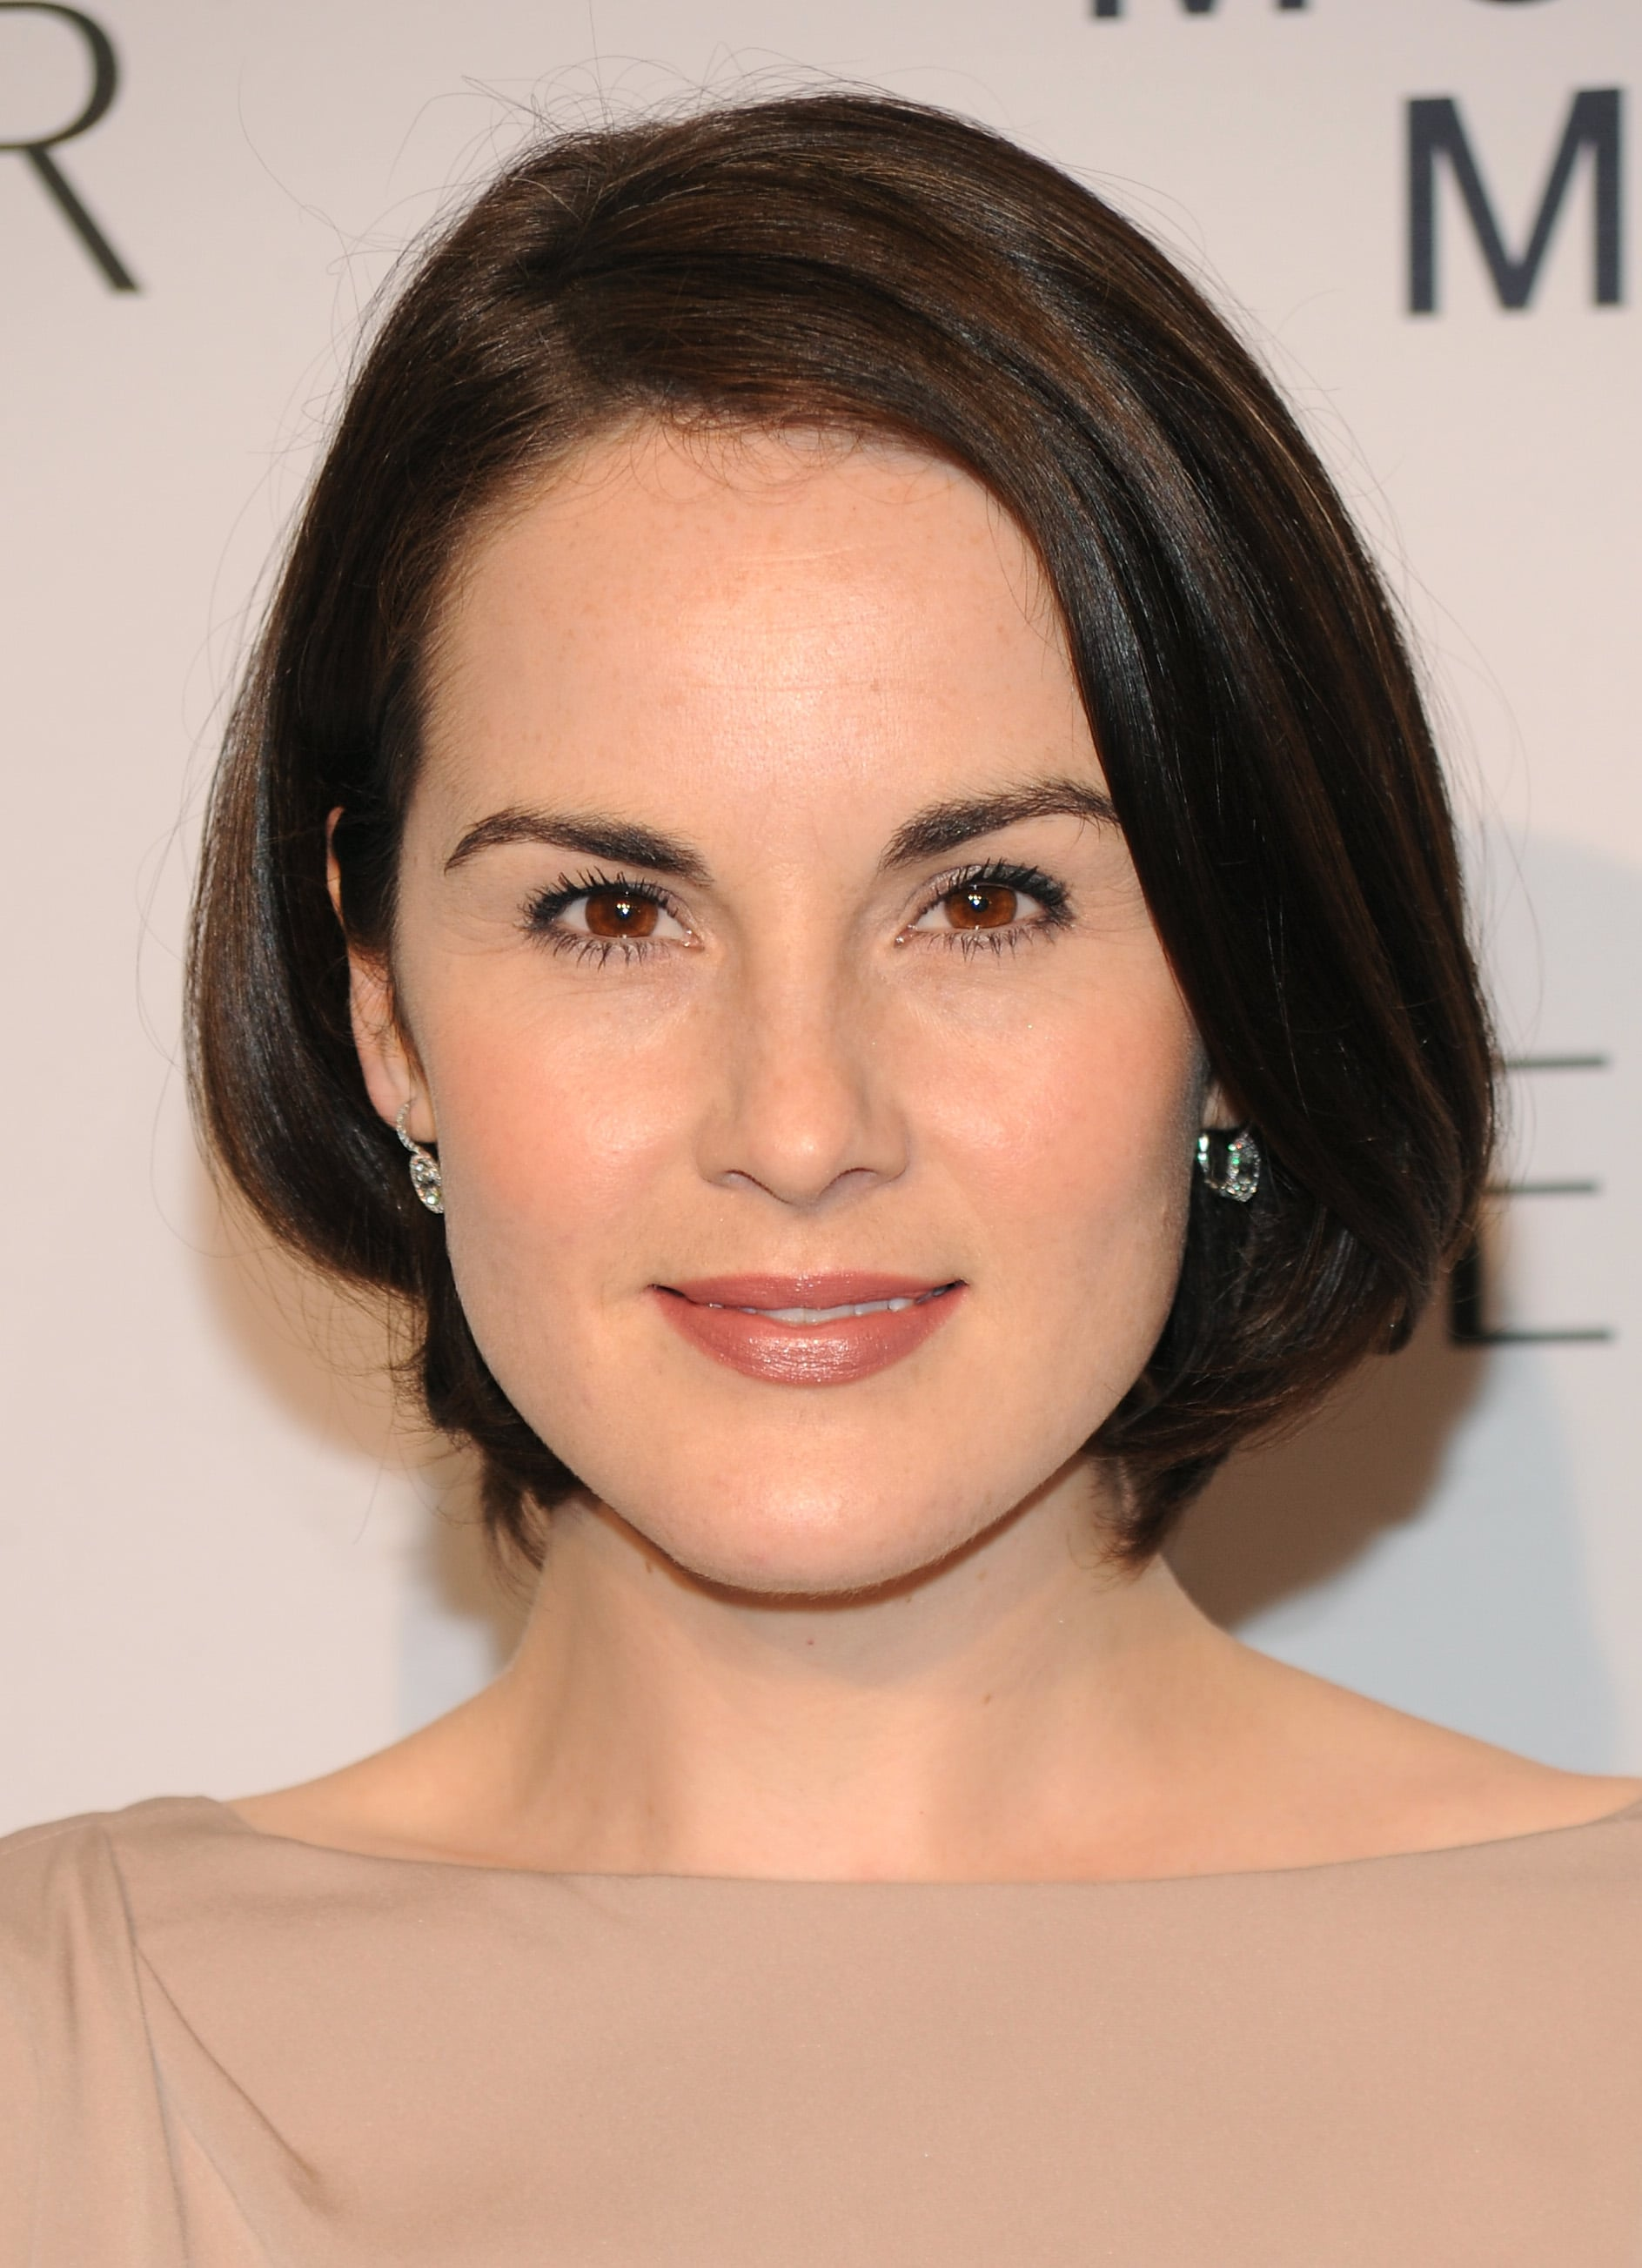 With flawless skin and bold brows, Michelle Dockery looked picture-perfect.